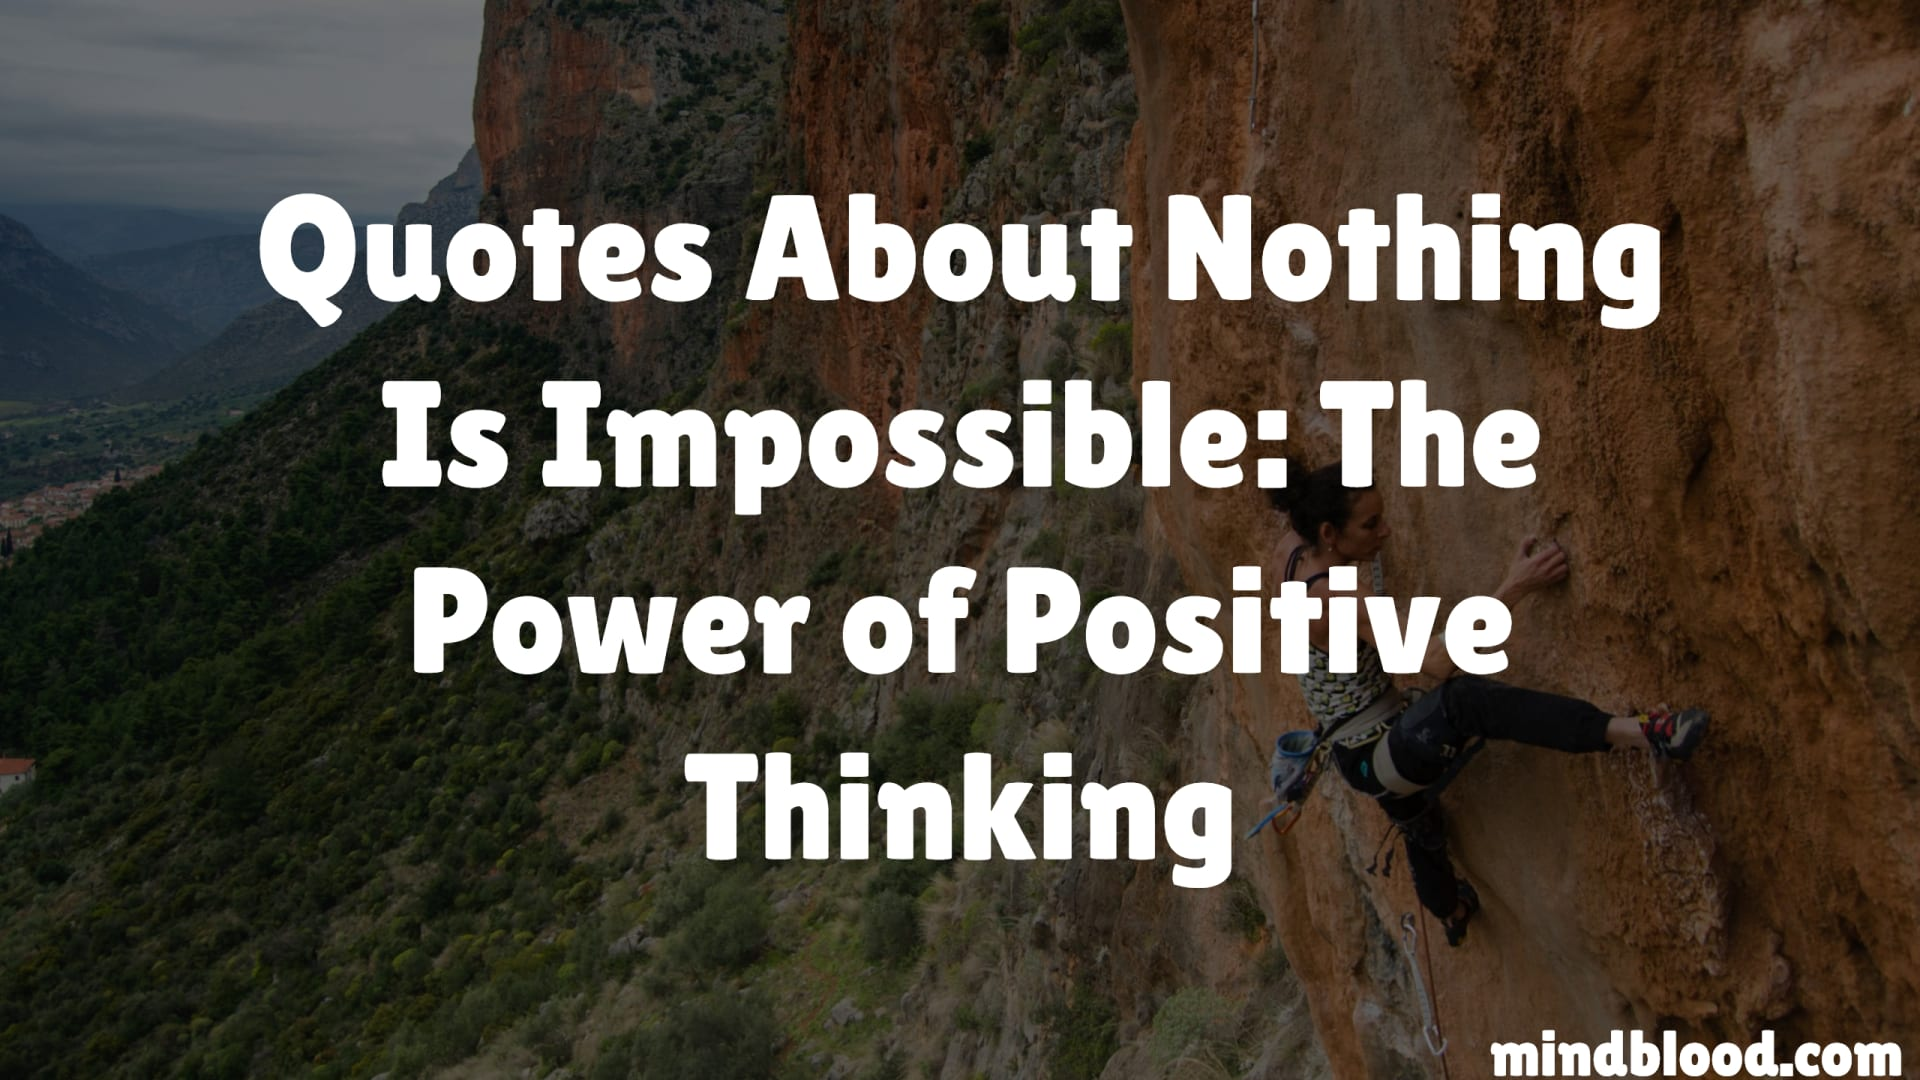 Quotes About Nothing Is Impossible: The Power of Positive Thinking